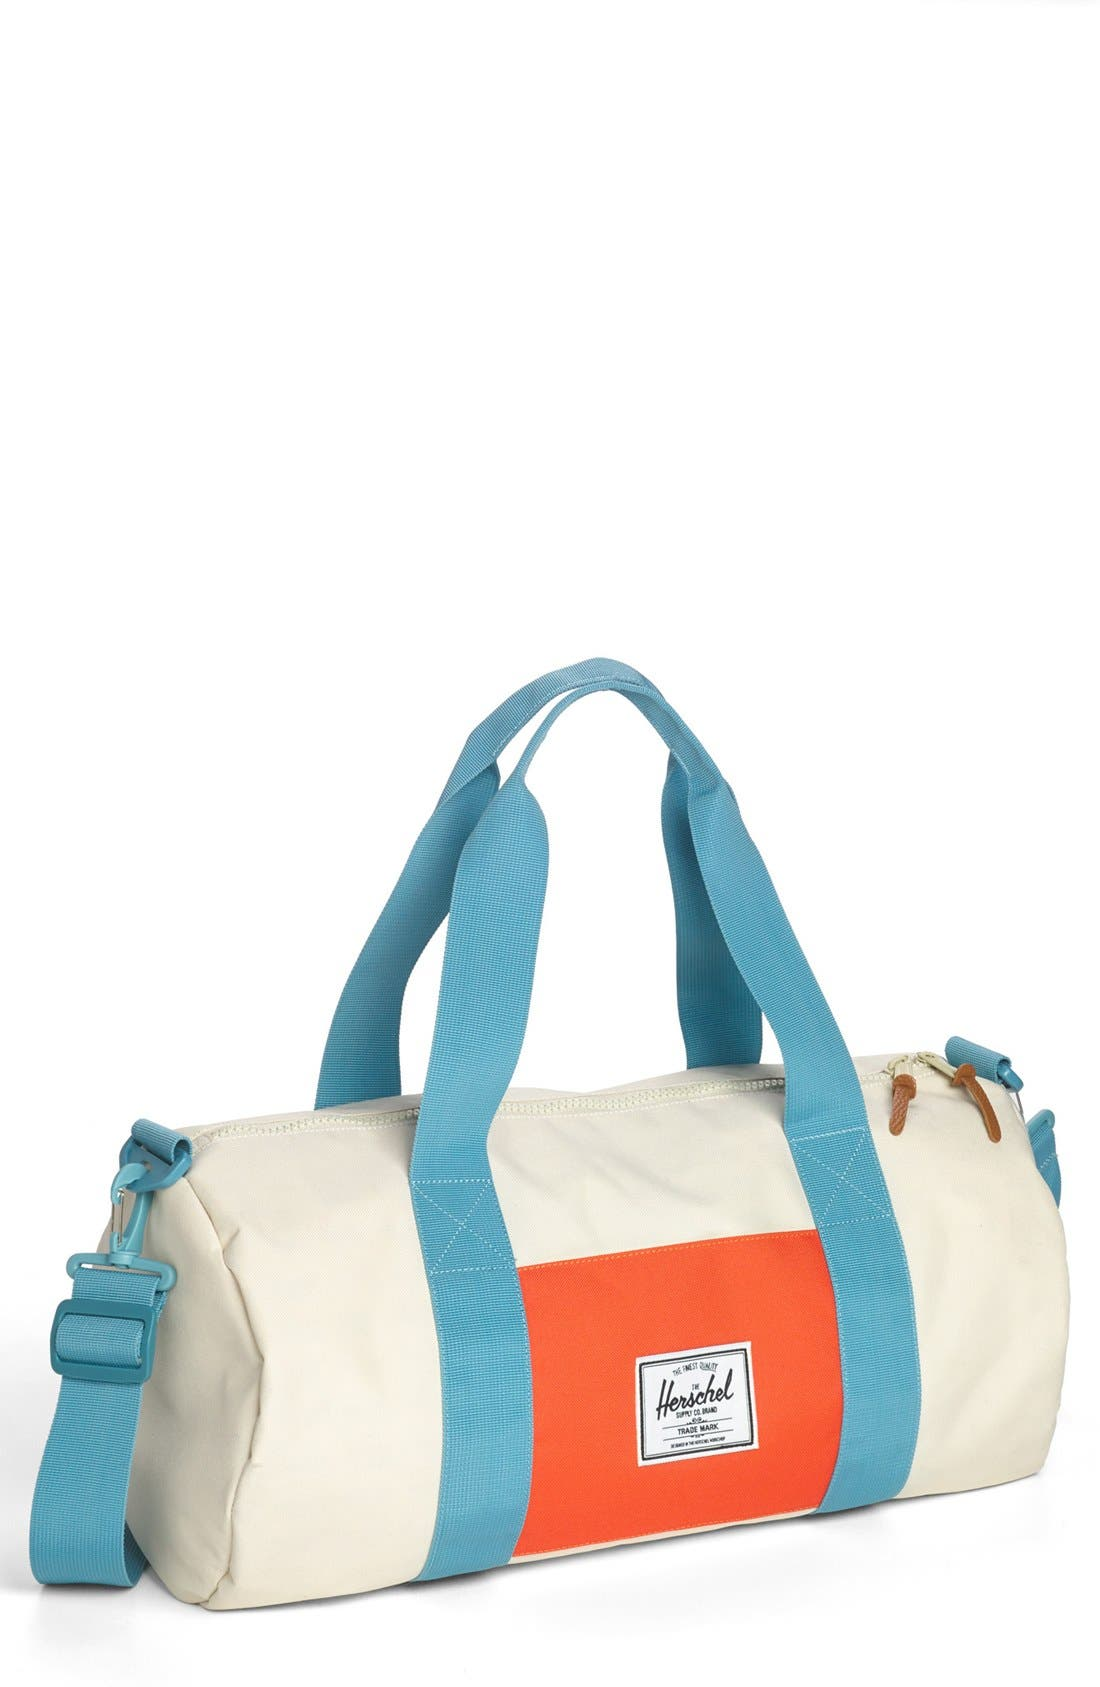 Alternate Image 1 Selected - Herschel Supply Co. 'Sutton - Rad Cars with Rad Surfboards Collection' Midsize Duffel Bag